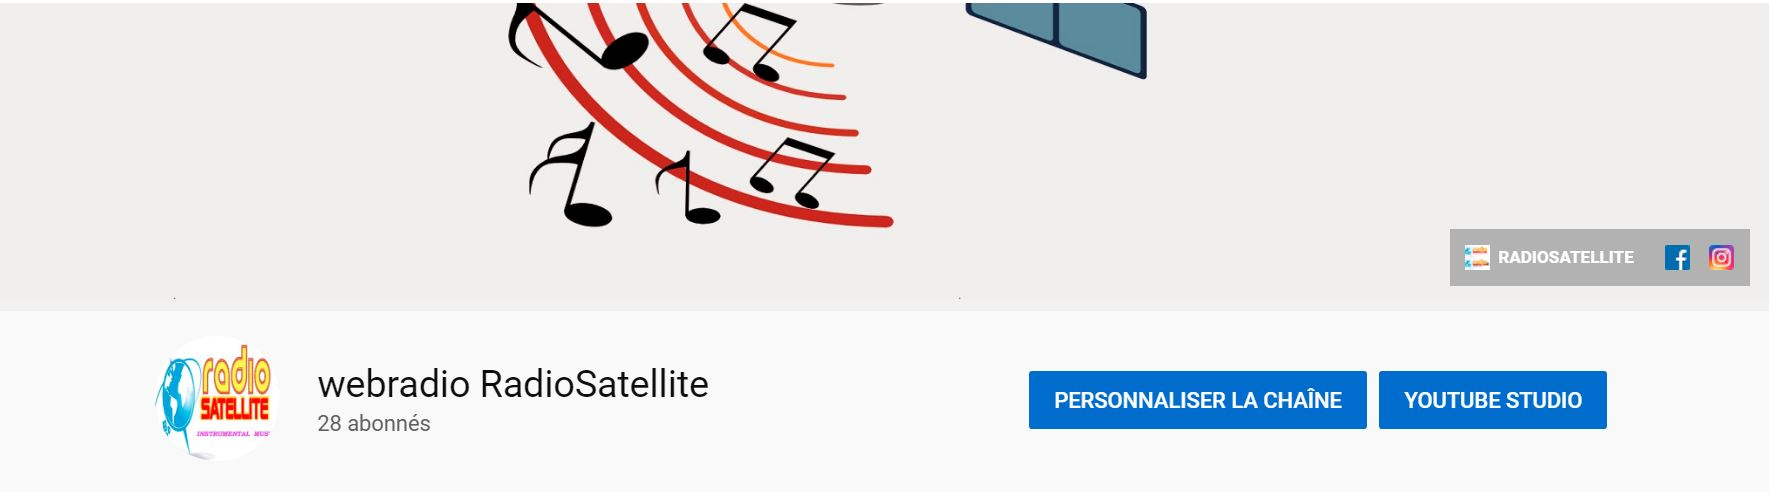 COVER YOUTUBE RADIOSATELLITE